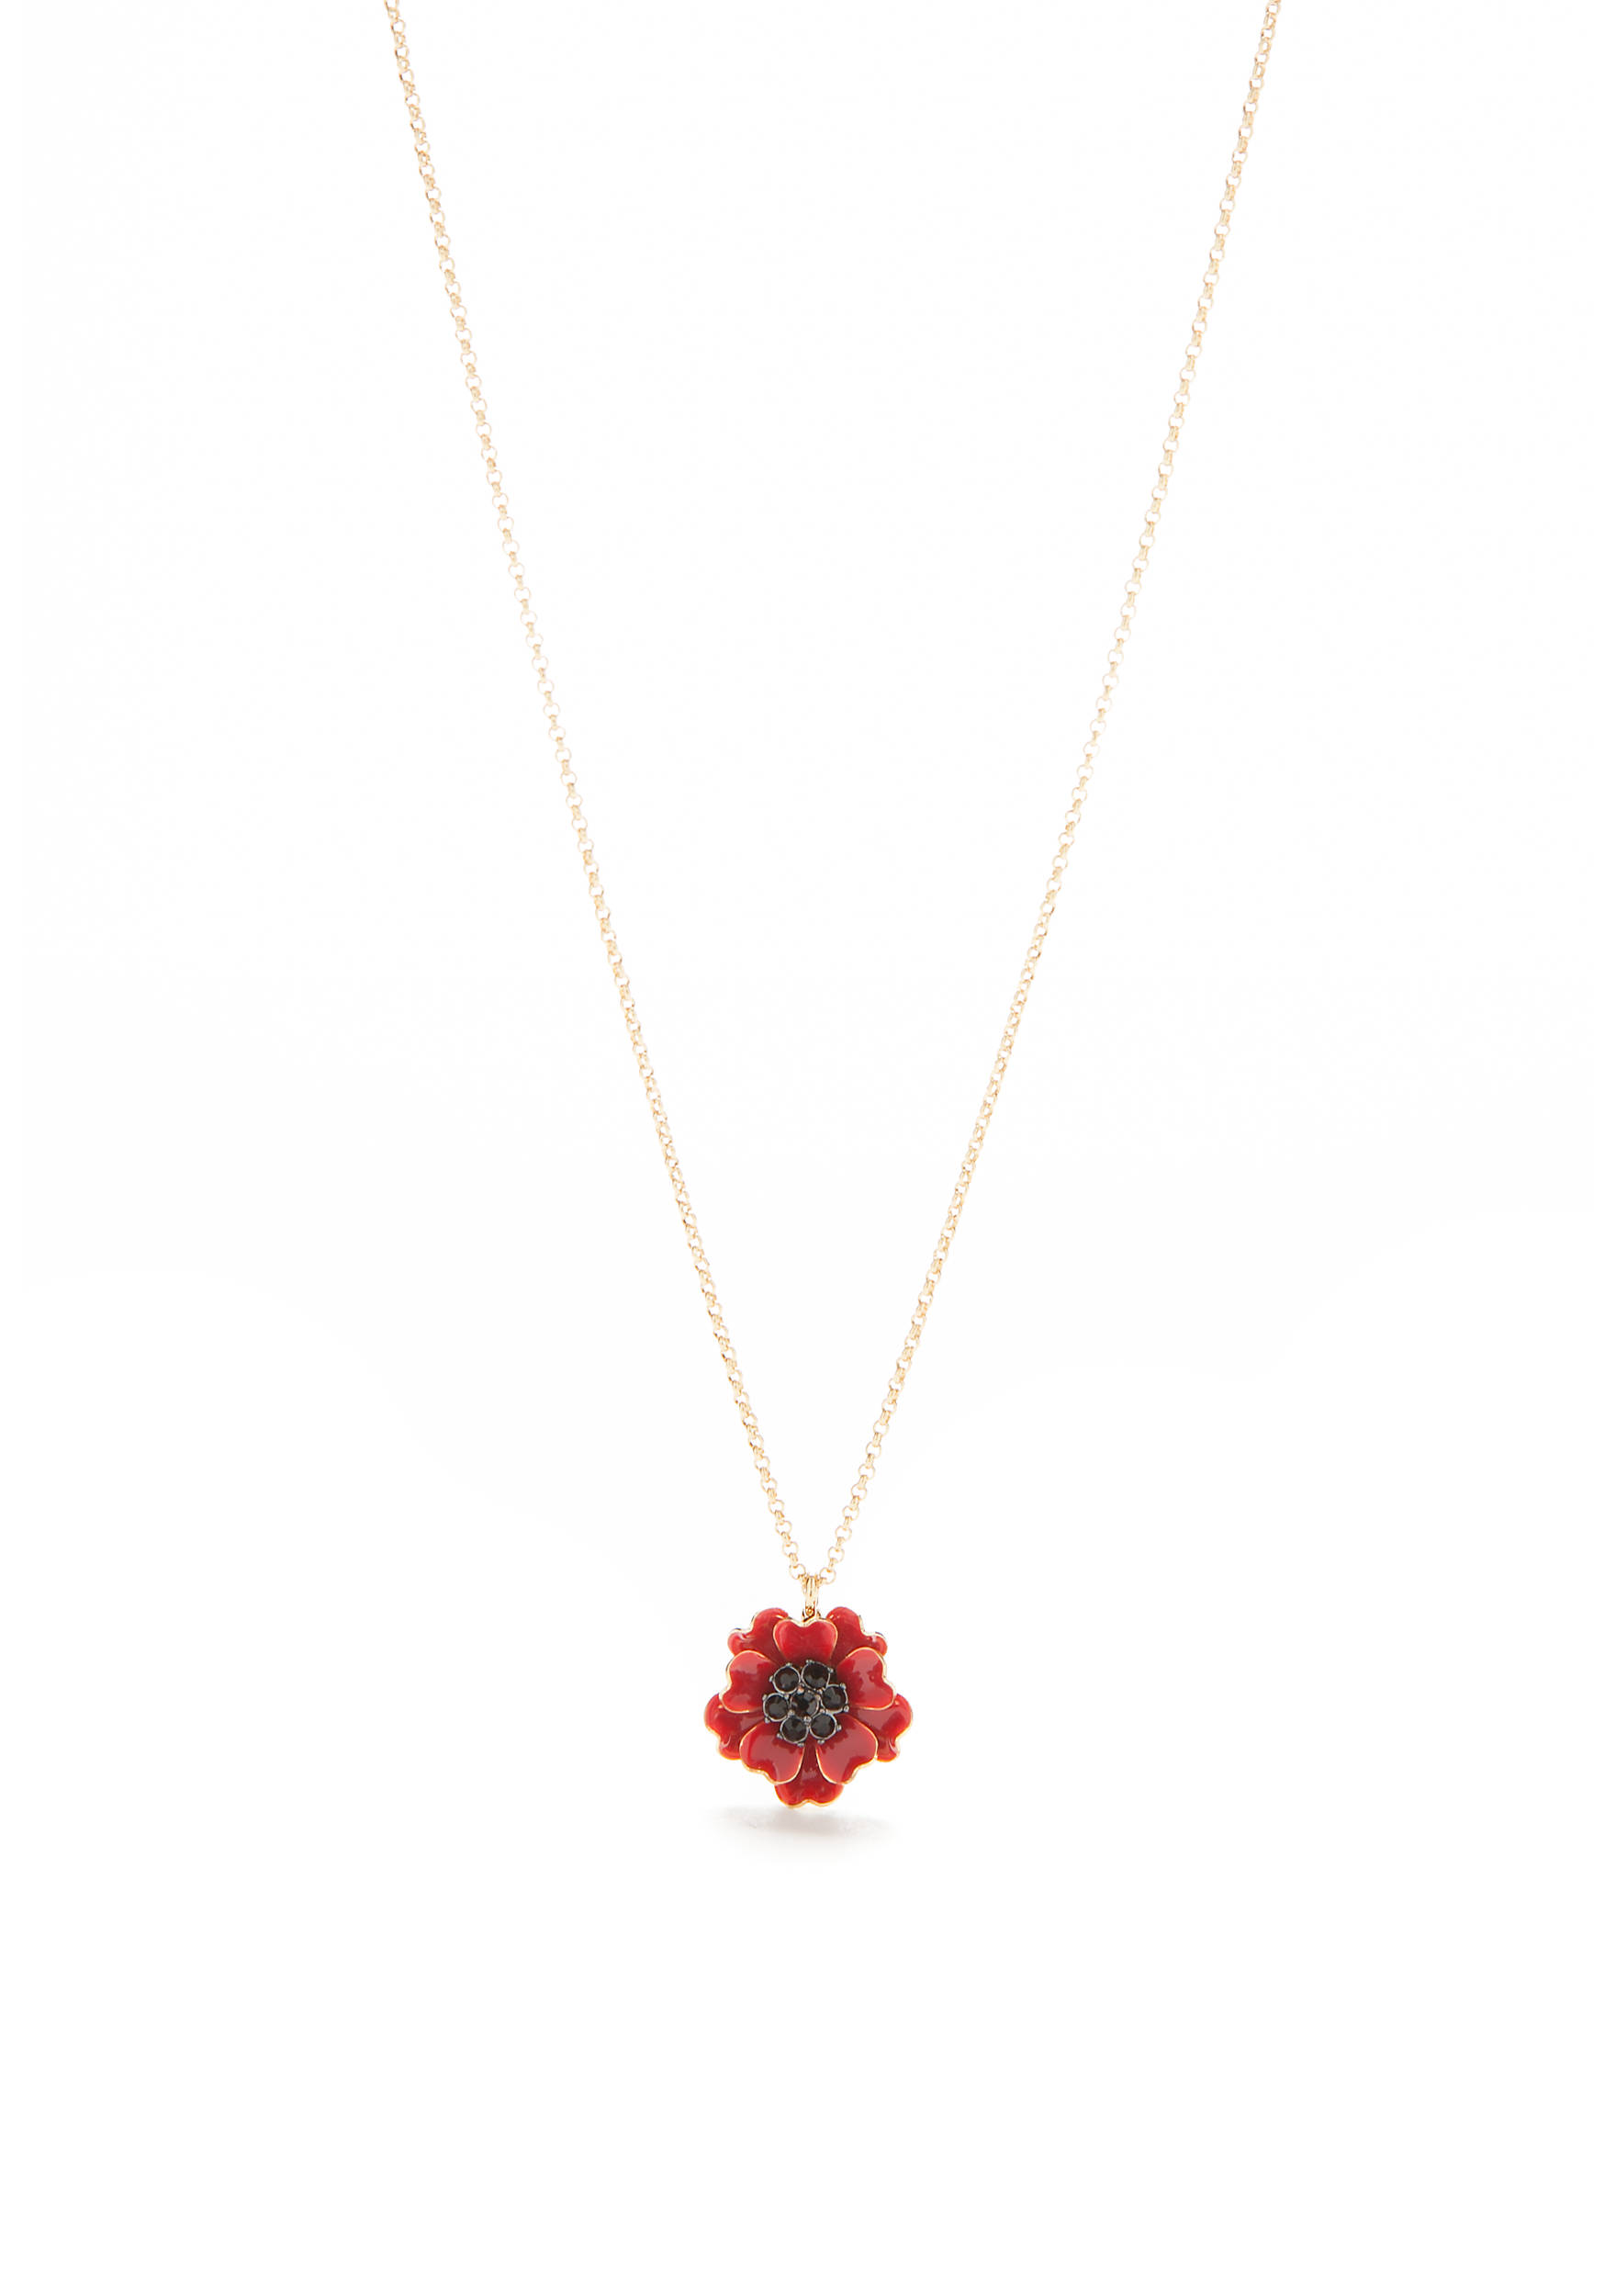 sale michal hamsa crimson golan necklace sa